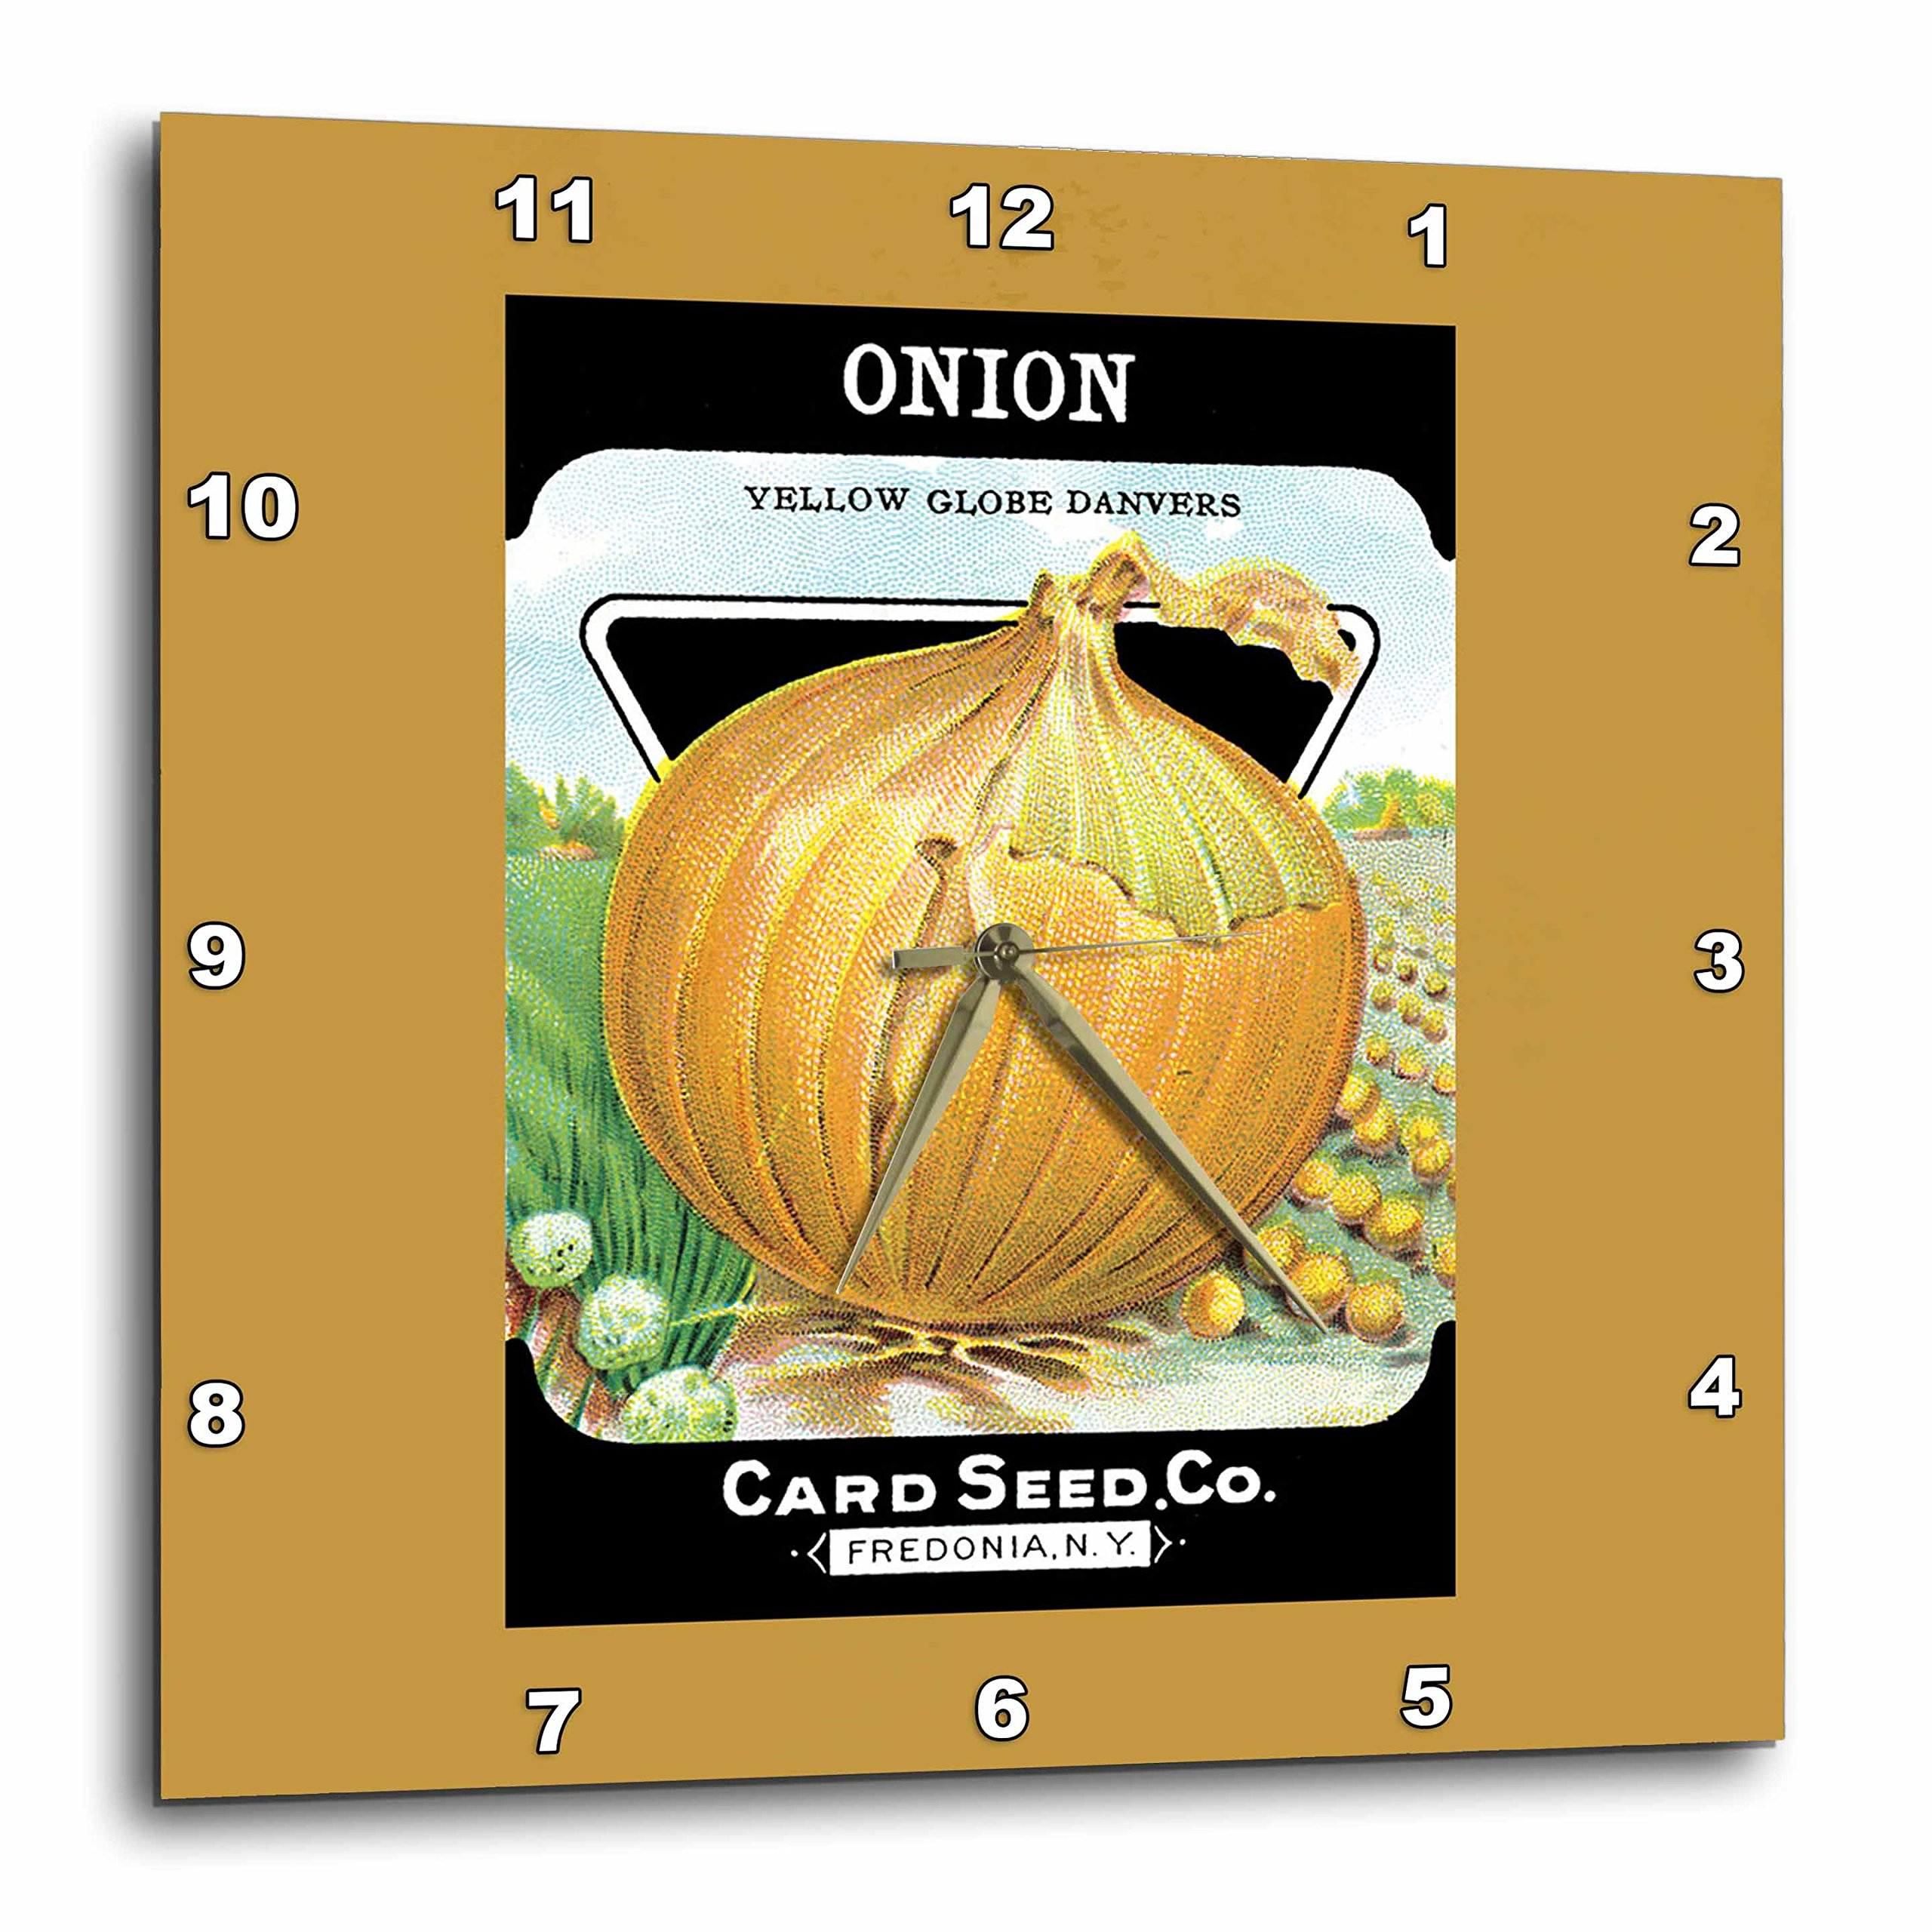 3dRose Onion Yellow Globe Danvers Vegetable Seed Packet Reproduction-Wall Clock, 10-inch (DPP_170463_1) by 3dRose